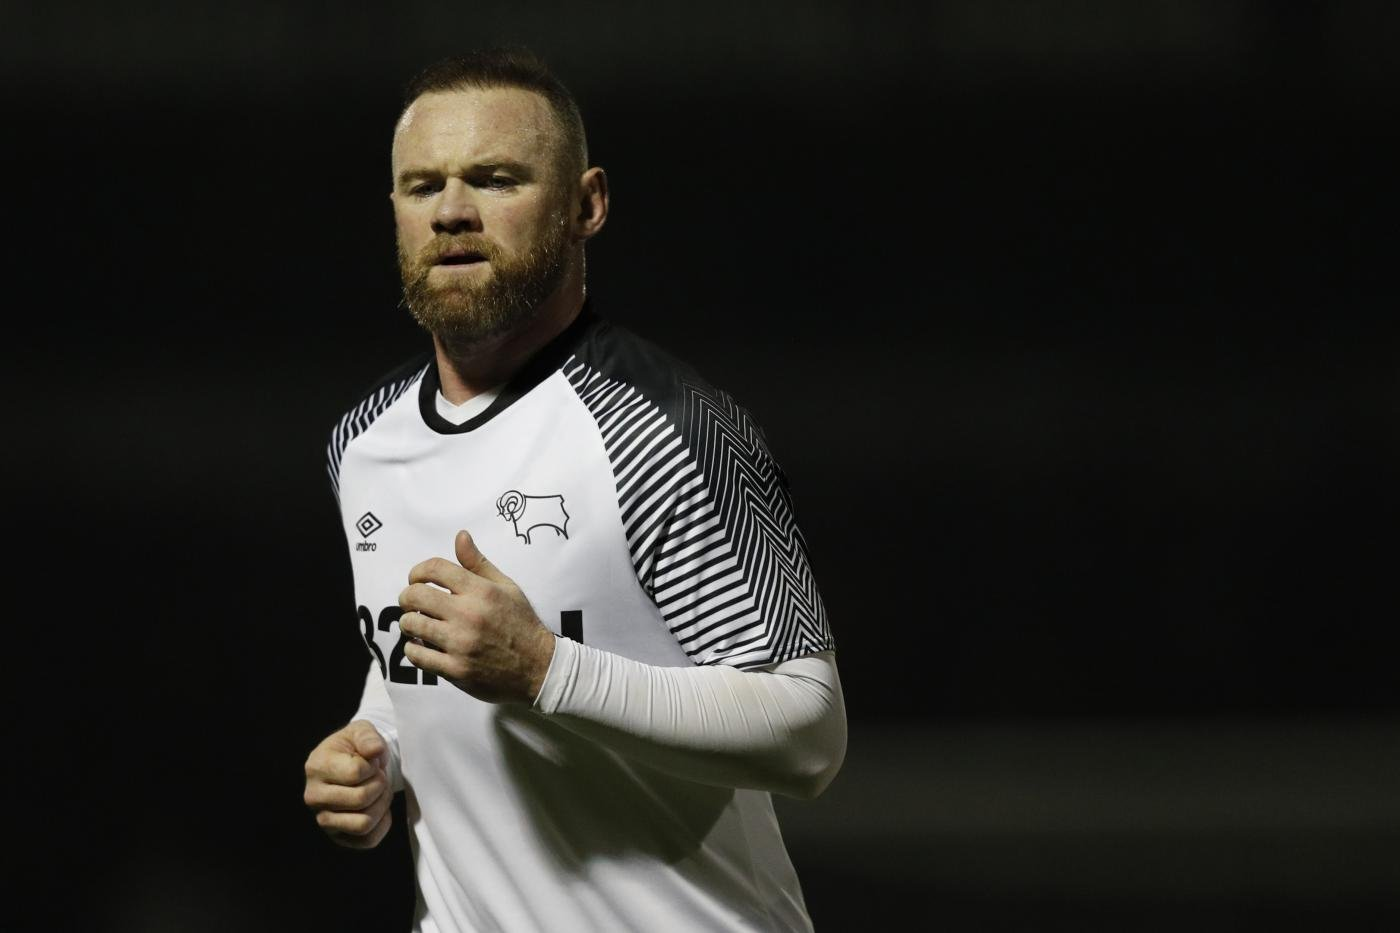 Wayne Rooney joined Derby County in January 2020